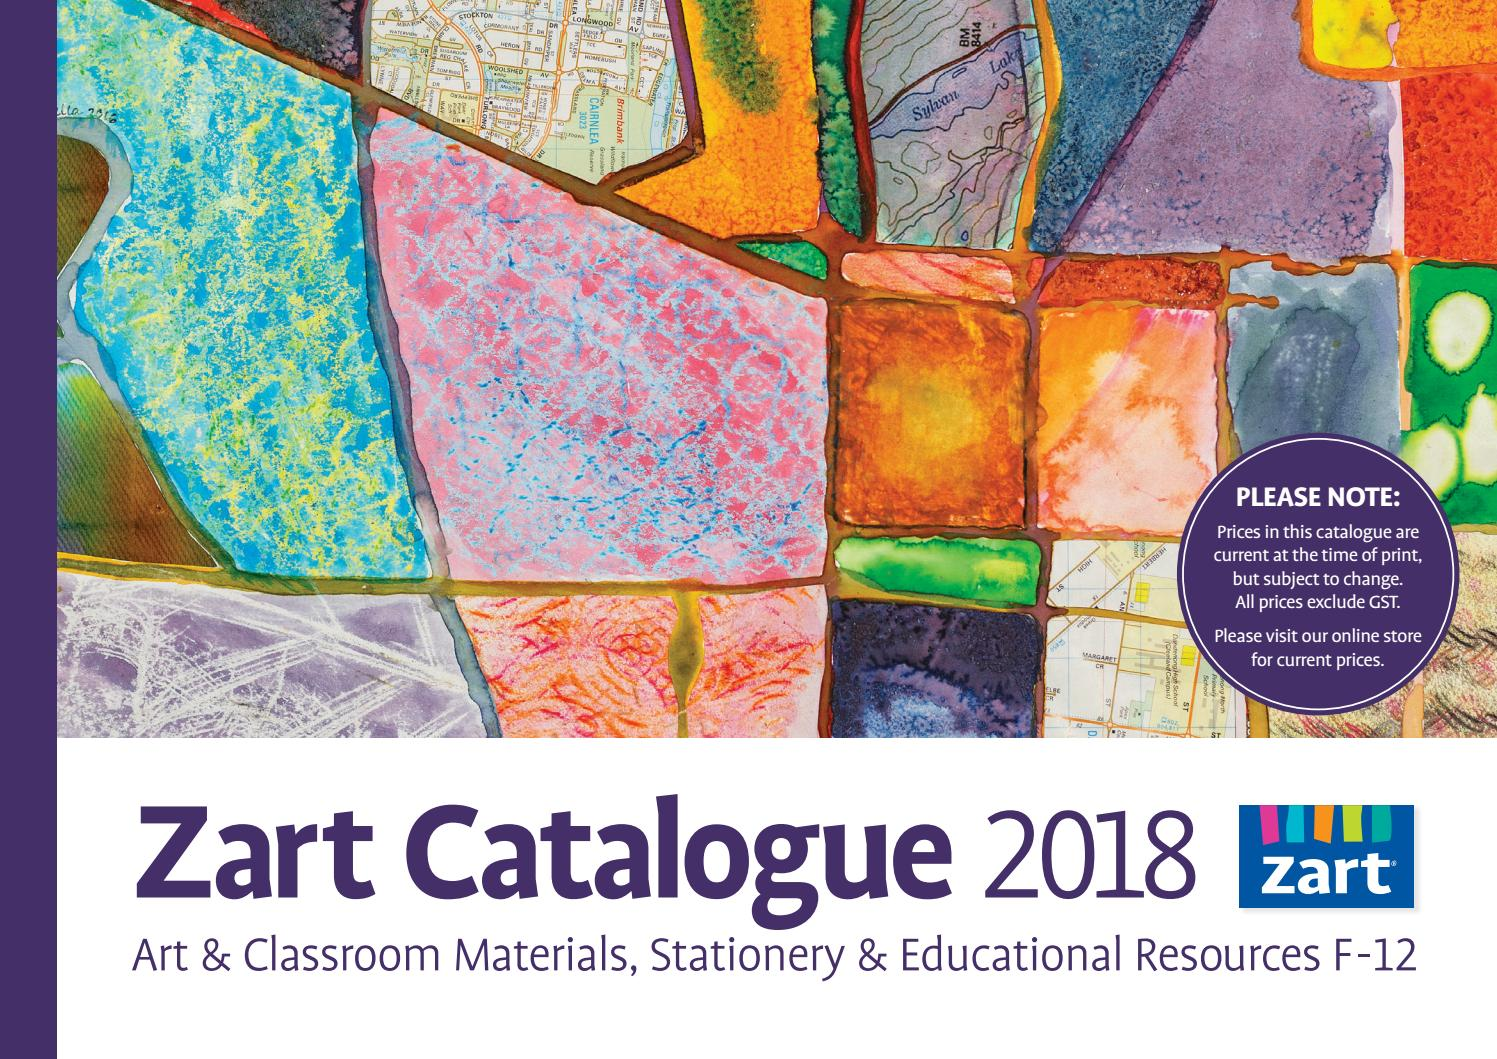 Zart School Catalogue 2018 by Zart : Art, craft and education